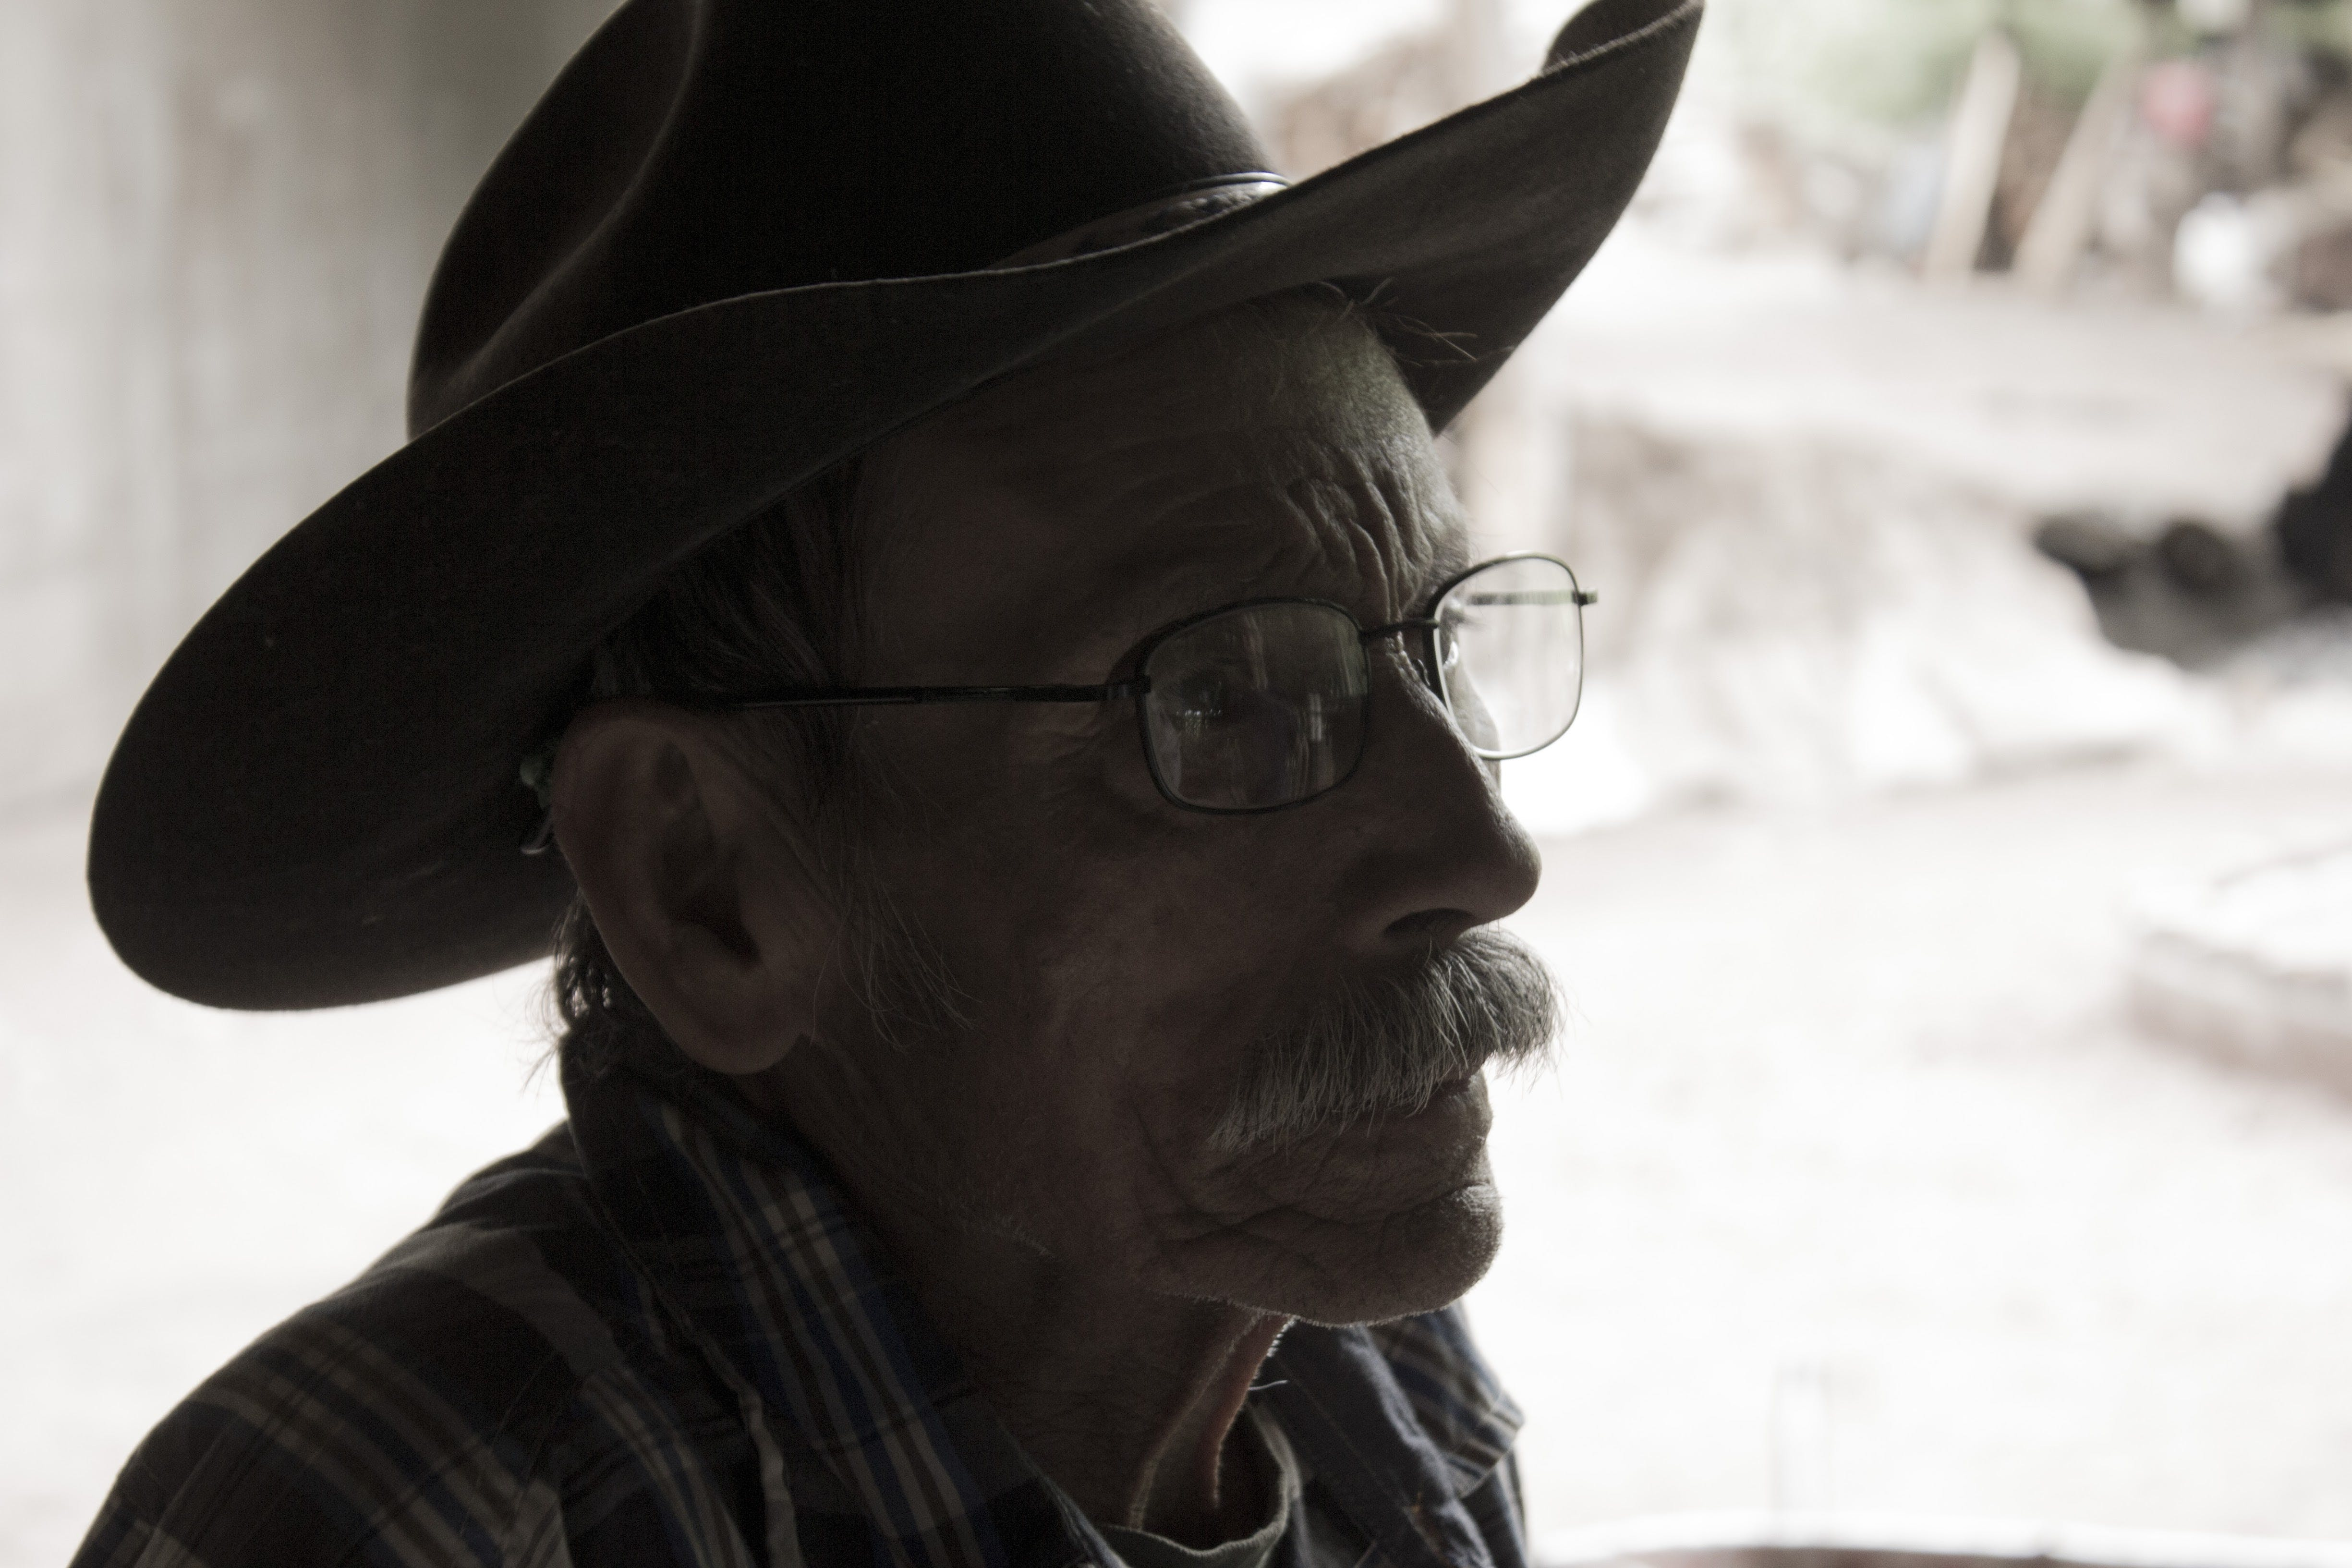 Man Wearing Eyeglasses and Cowboy Hat